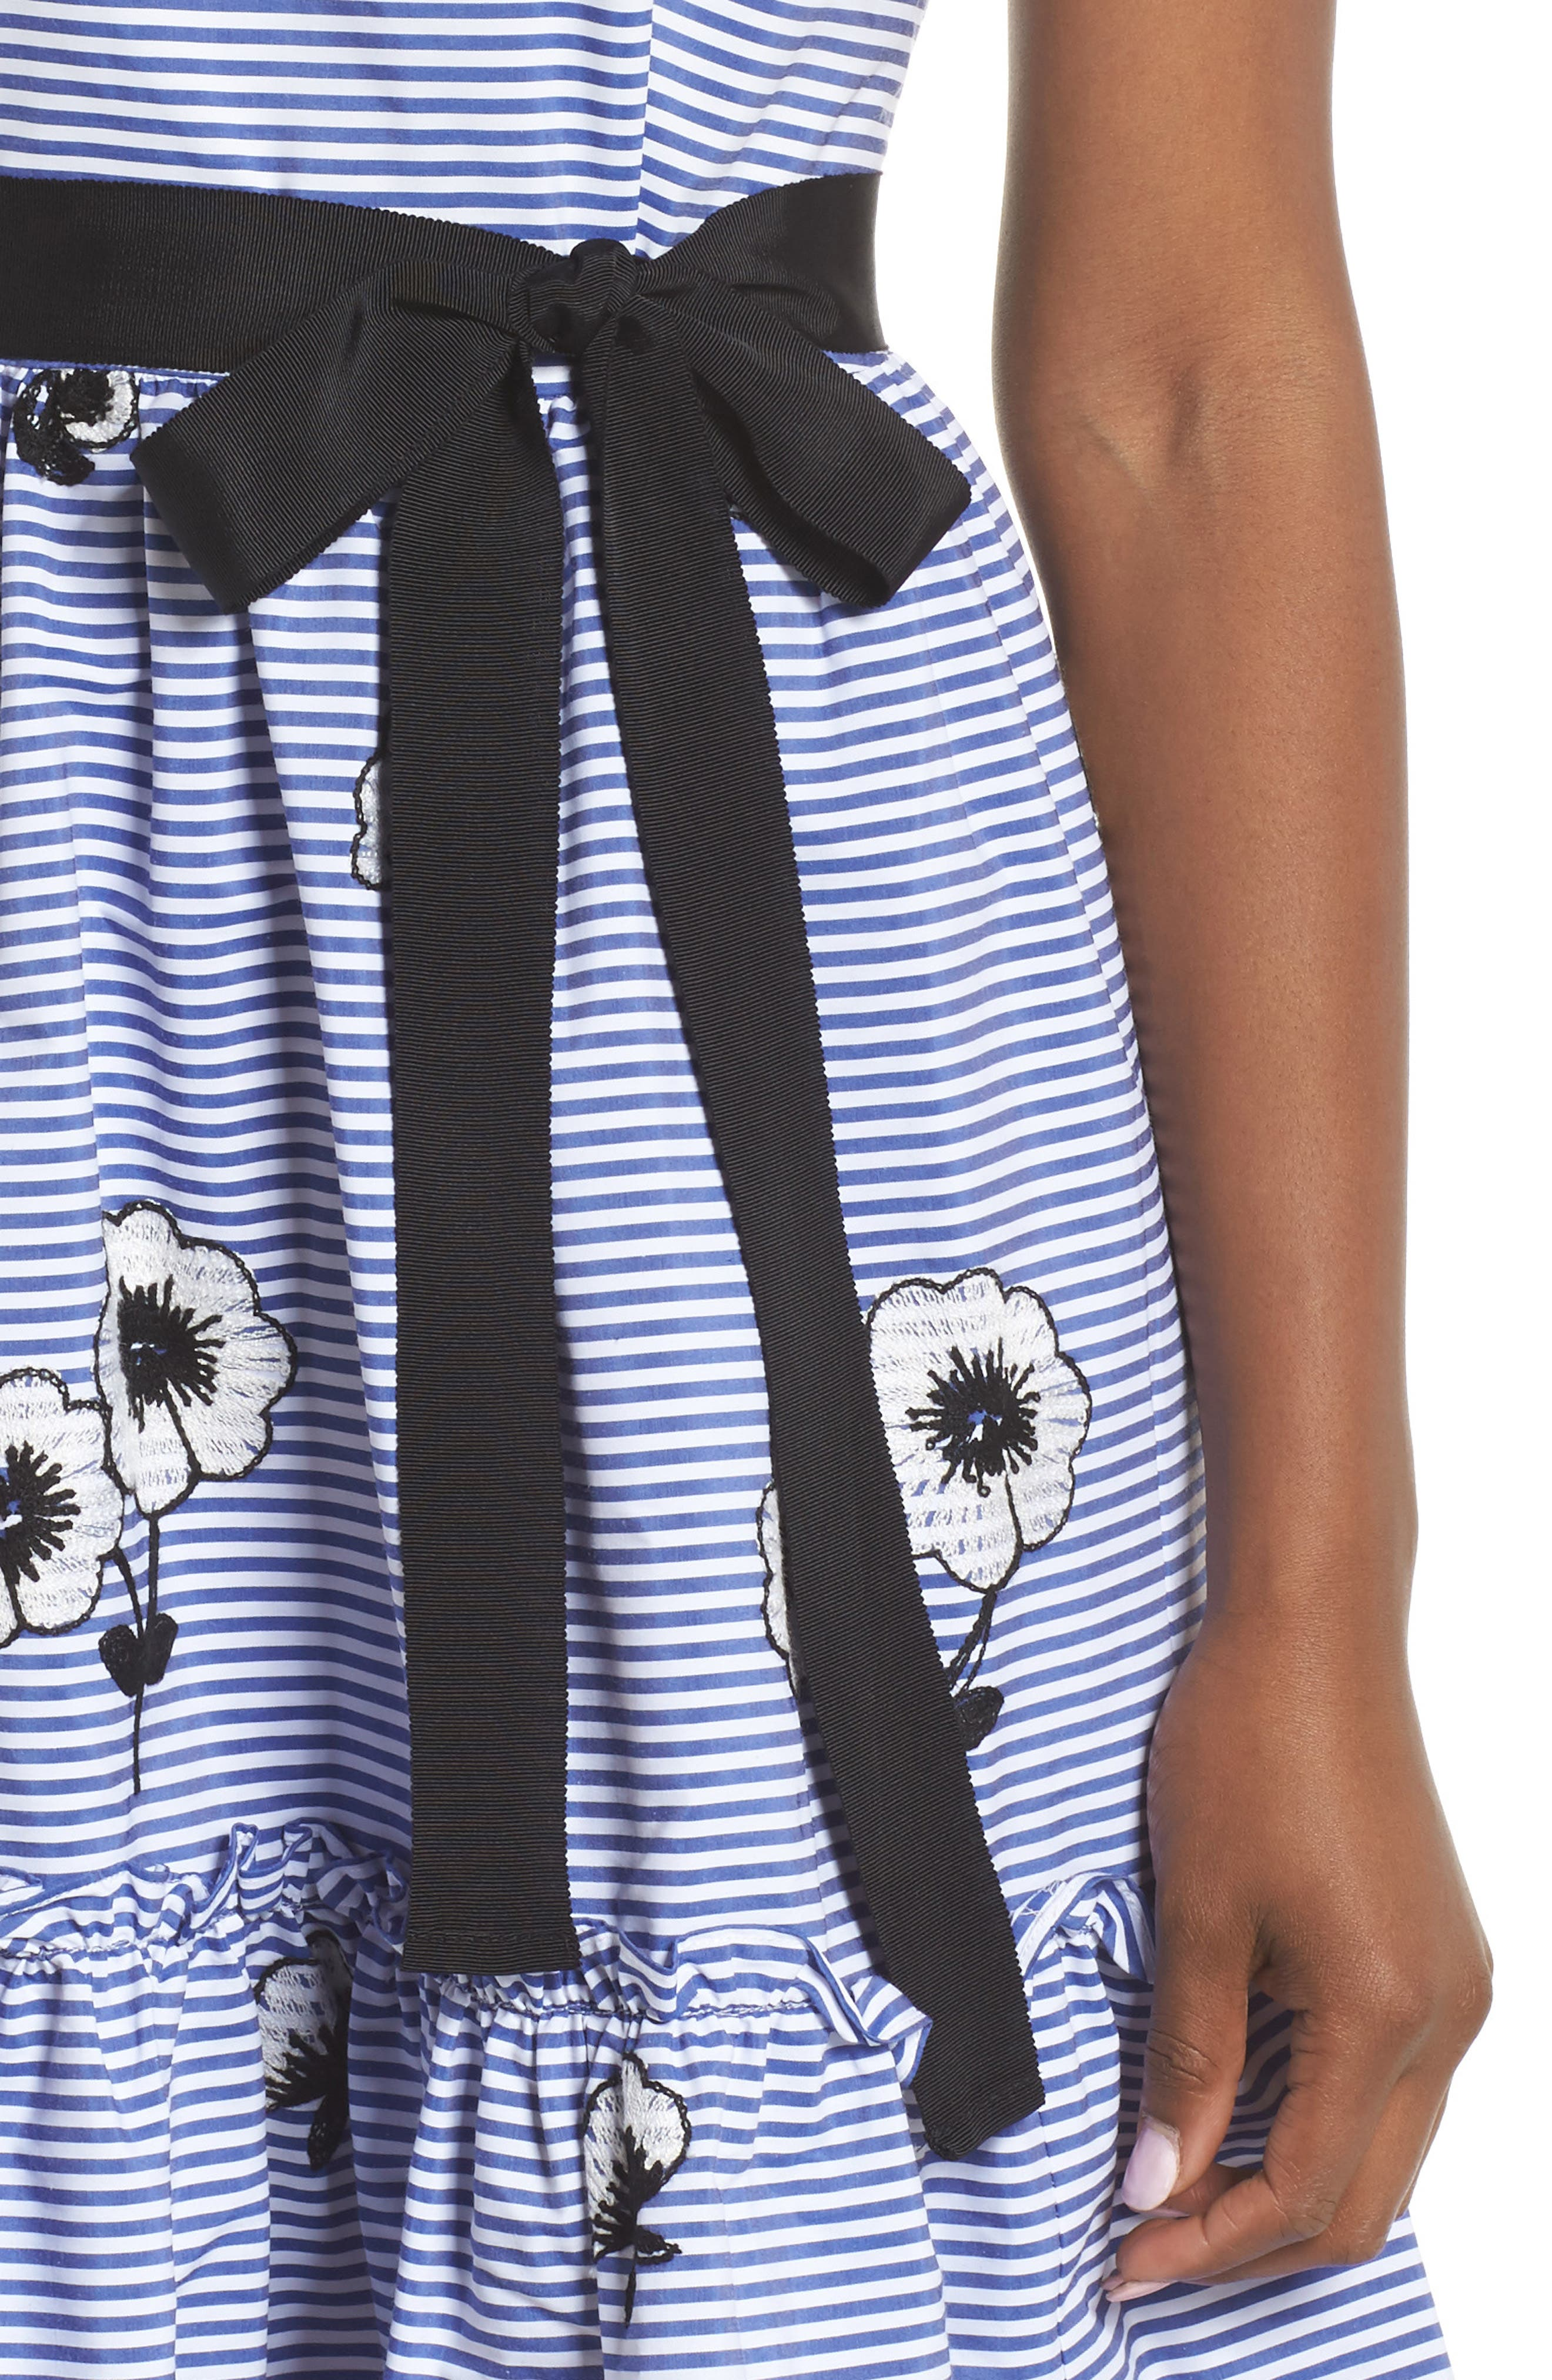 Embroidered Stripe Fit & Flare Dress,                             Alternate thumbnail 4, color,                             Blue/ White